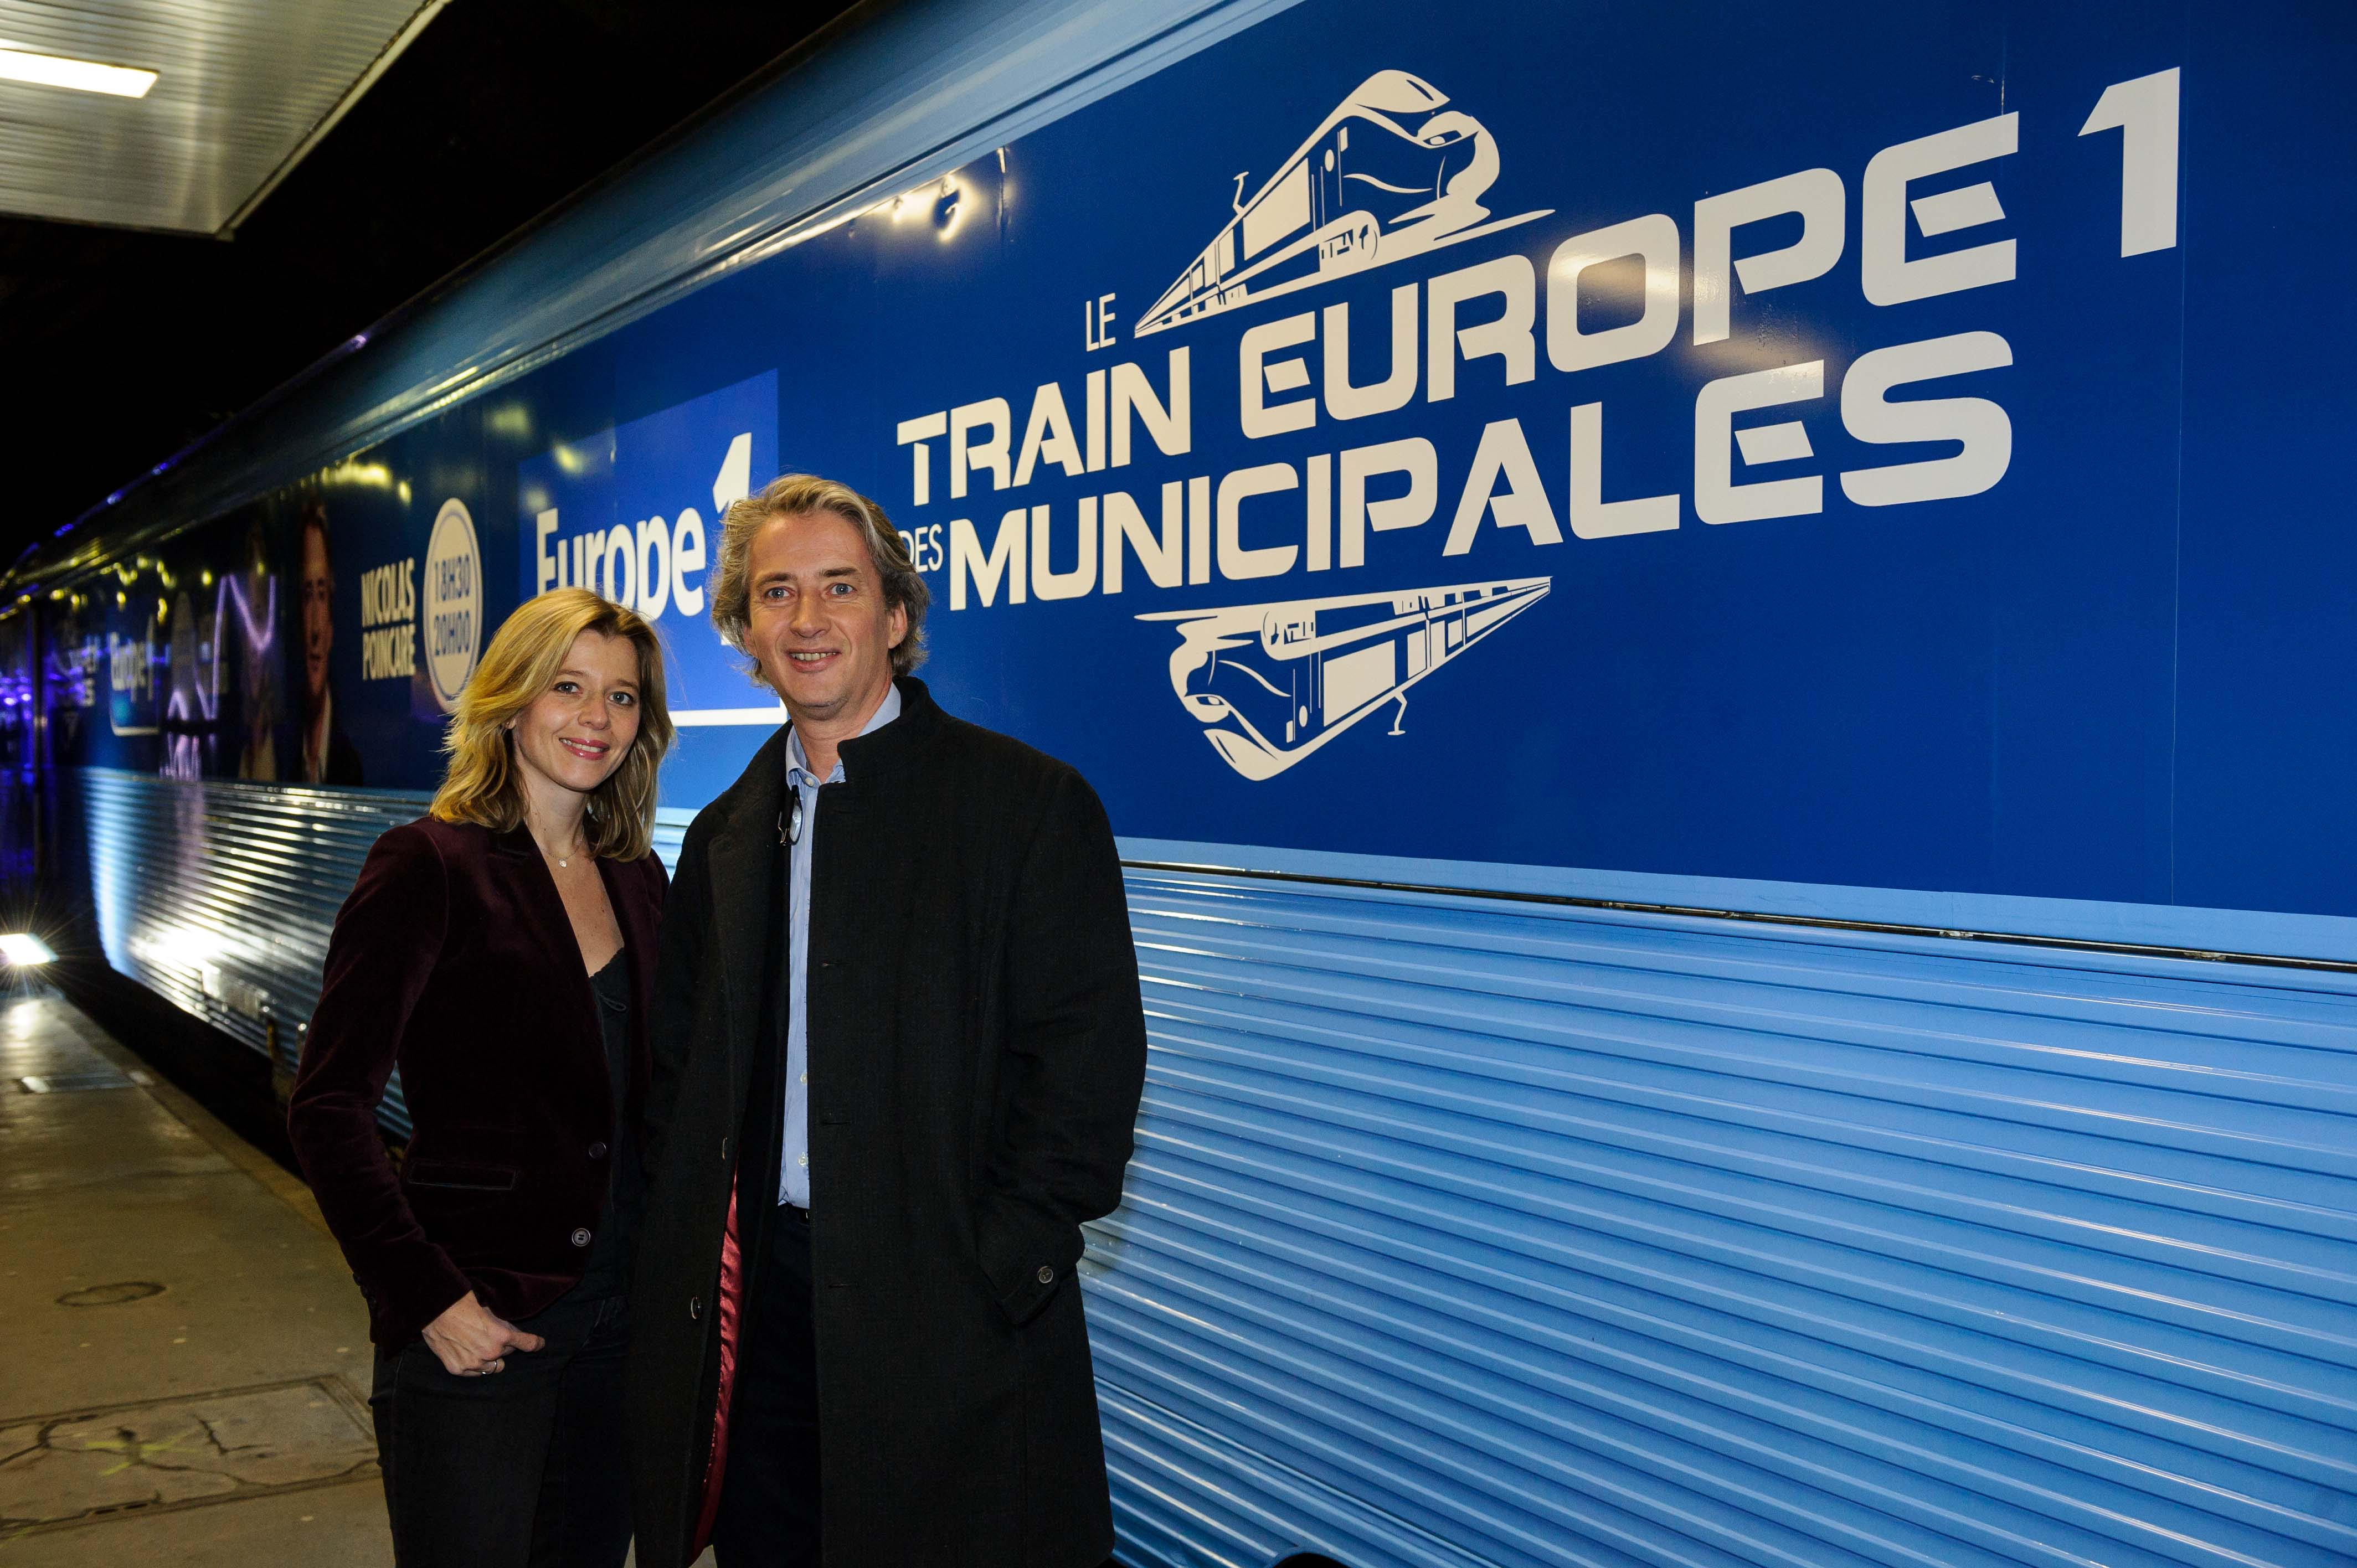 Wendy Bouchard et Nicolas Poincaré, des habitués du Train Europe 1